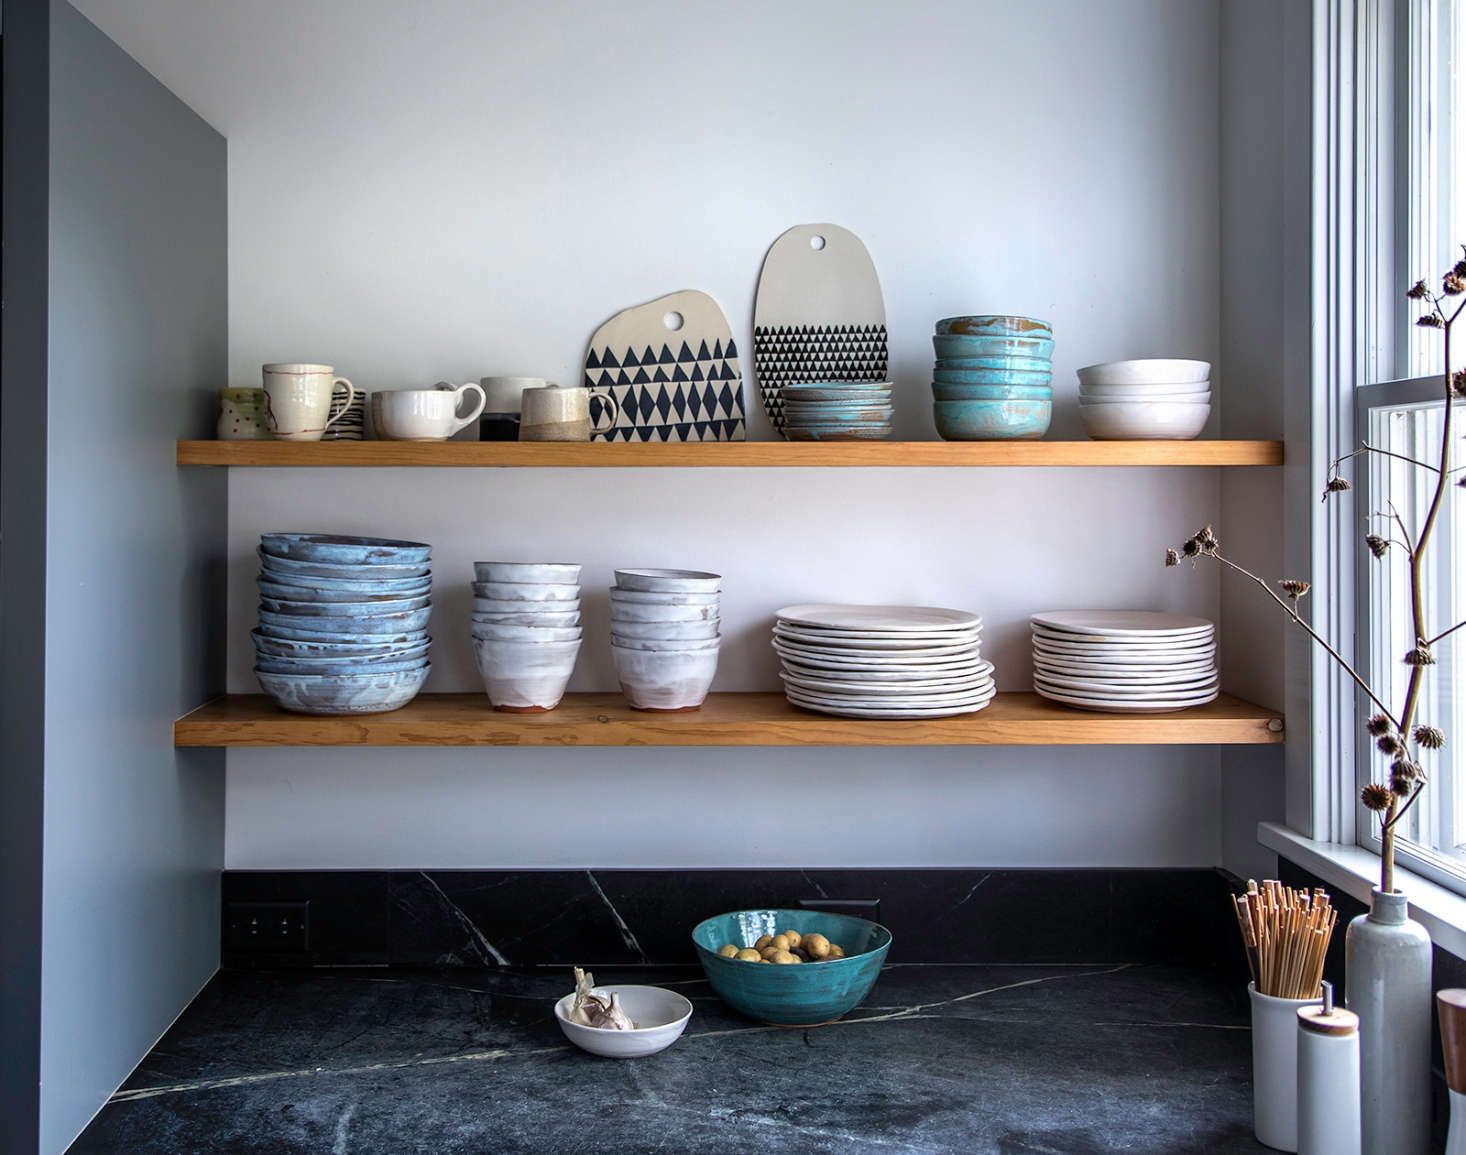 Open shelving holds Dunja's collection of dishes by Tivoli Tile Works. The geometric cheese boards are by Dunja (left) and Mbartstudios (right).